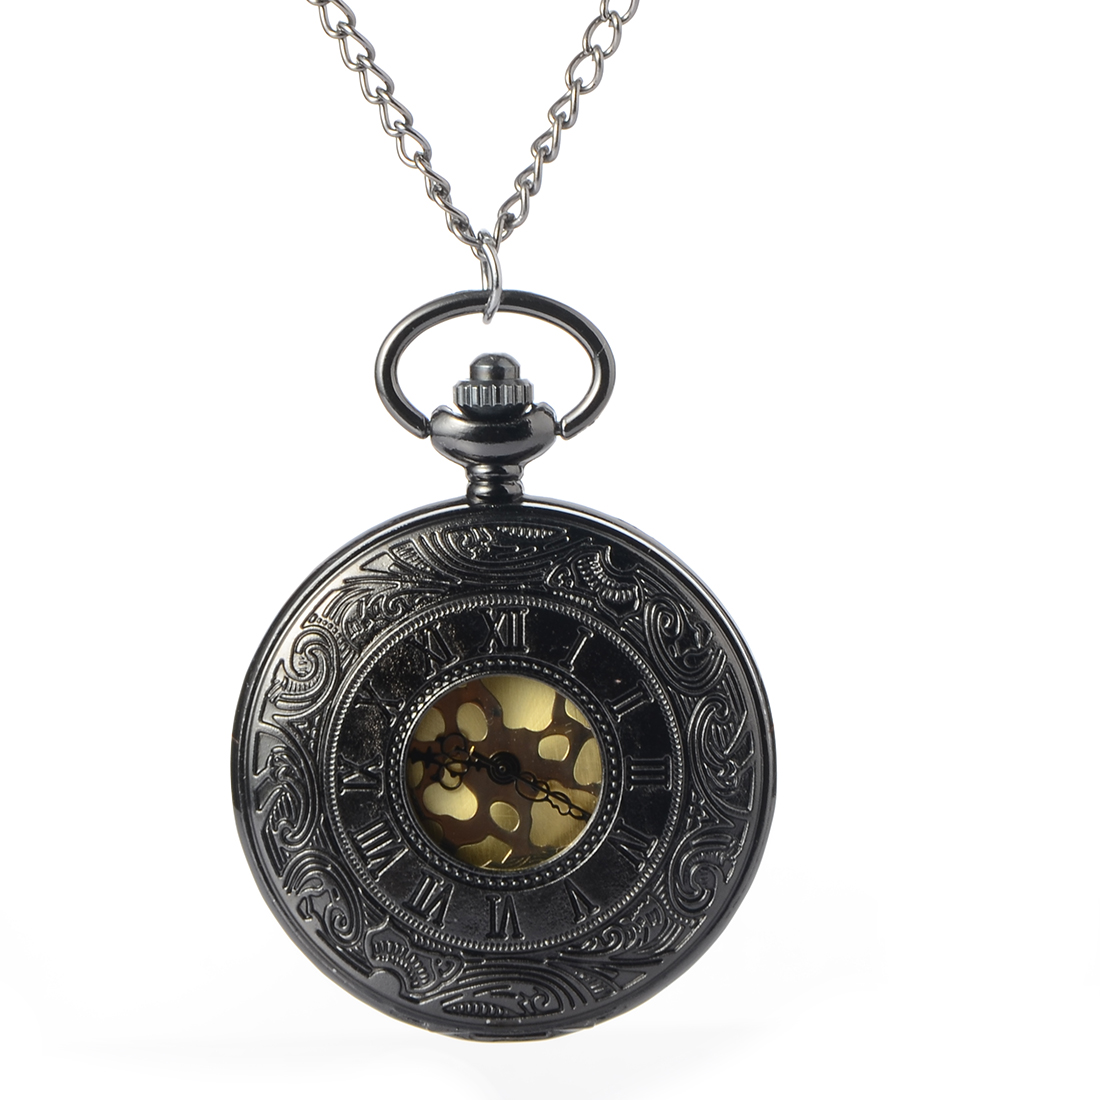 Bronze Black pocket watch Steampunk Retro Men Women Necklace Pendant Pocket Watch Roman Dial Quartz pocket watch relogio debolso unique smooth case pocket watch mechanical automatic watches with pendant chain necklace men women gift relogio de bolso